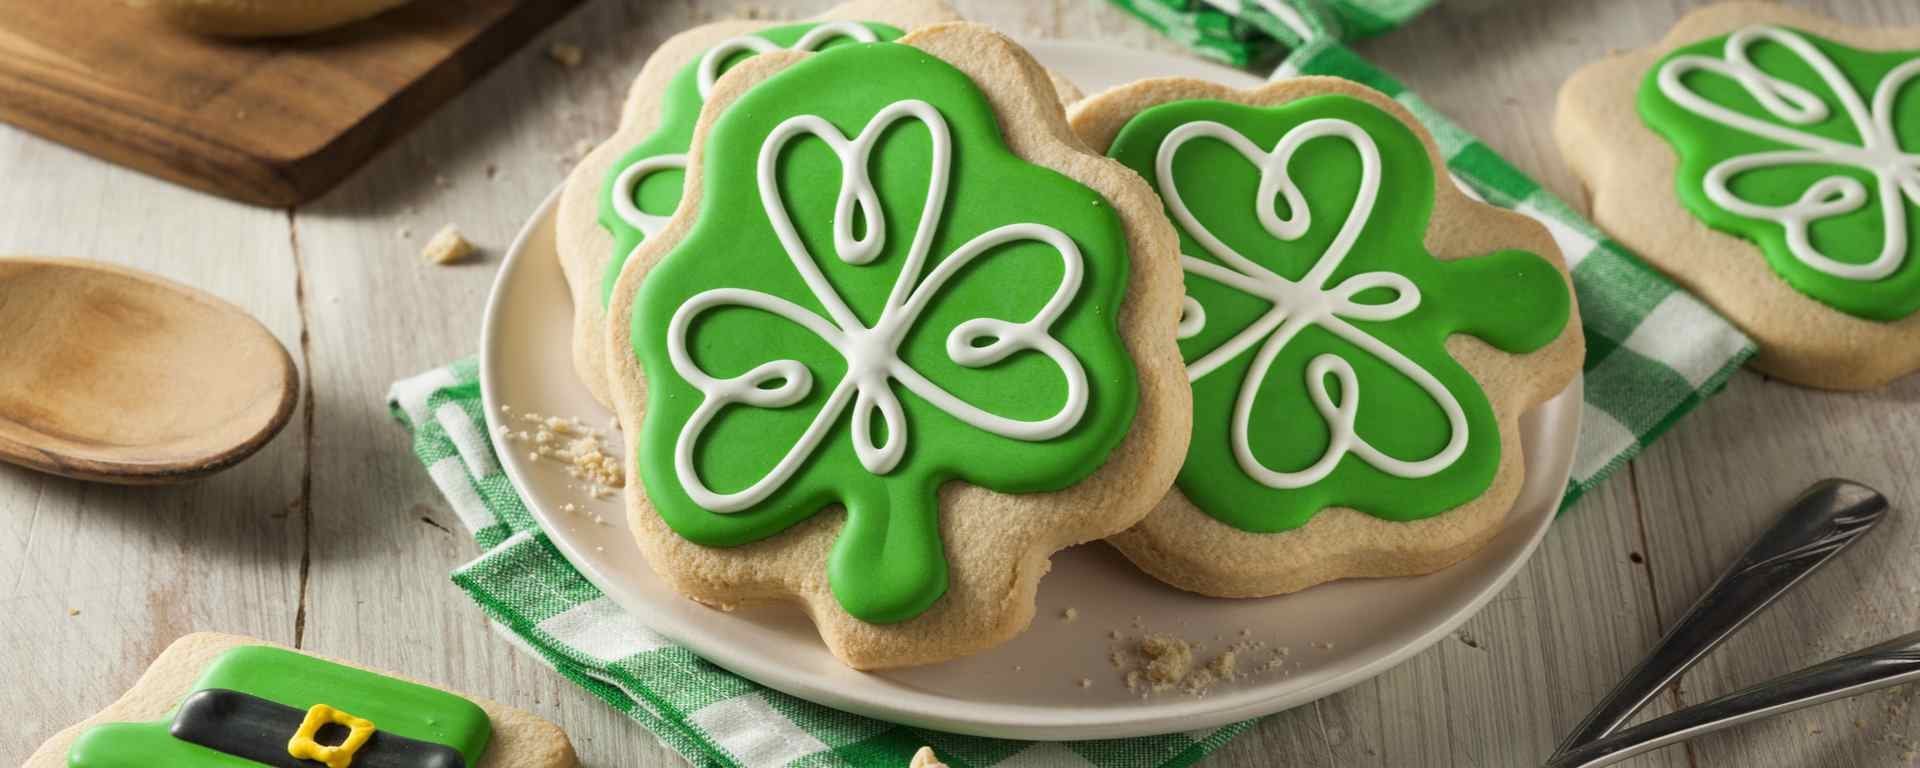 Photo of - Biscuits de la Saint-Patrick